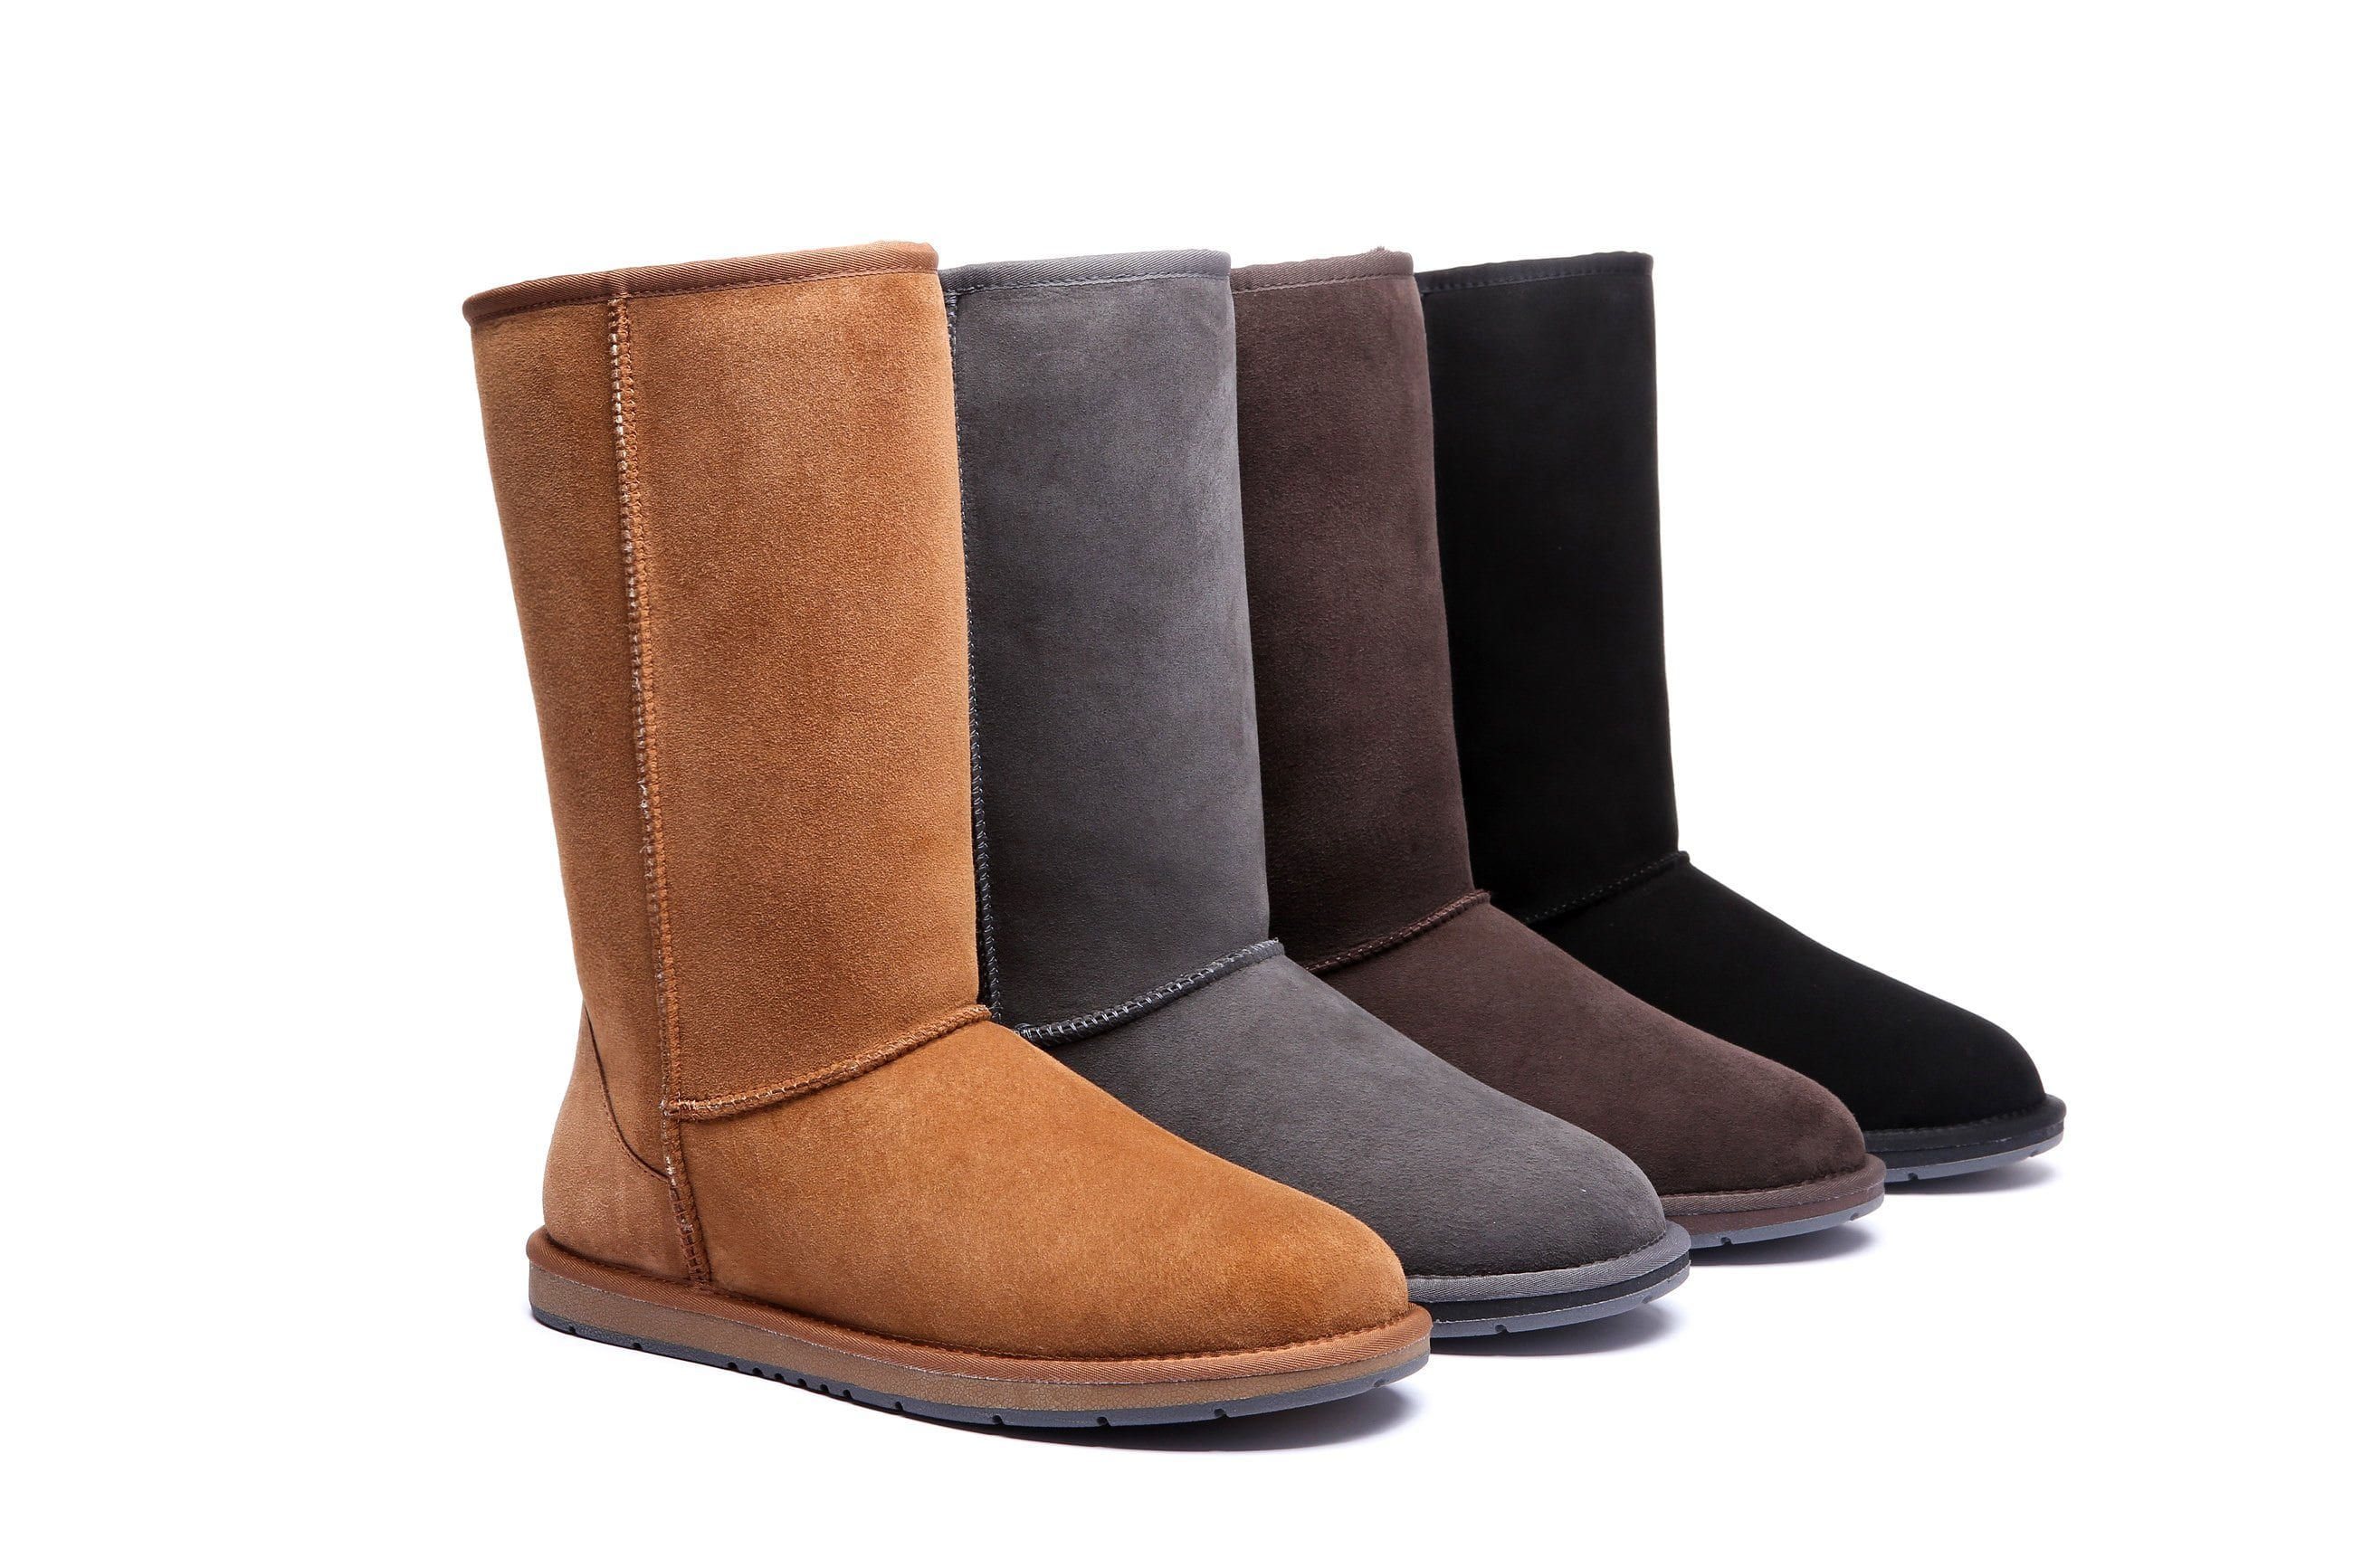 aa5208c8baf UGG Boots Australia Premium Double Face Sheepskin Tall Classic Water  Resistant #15901